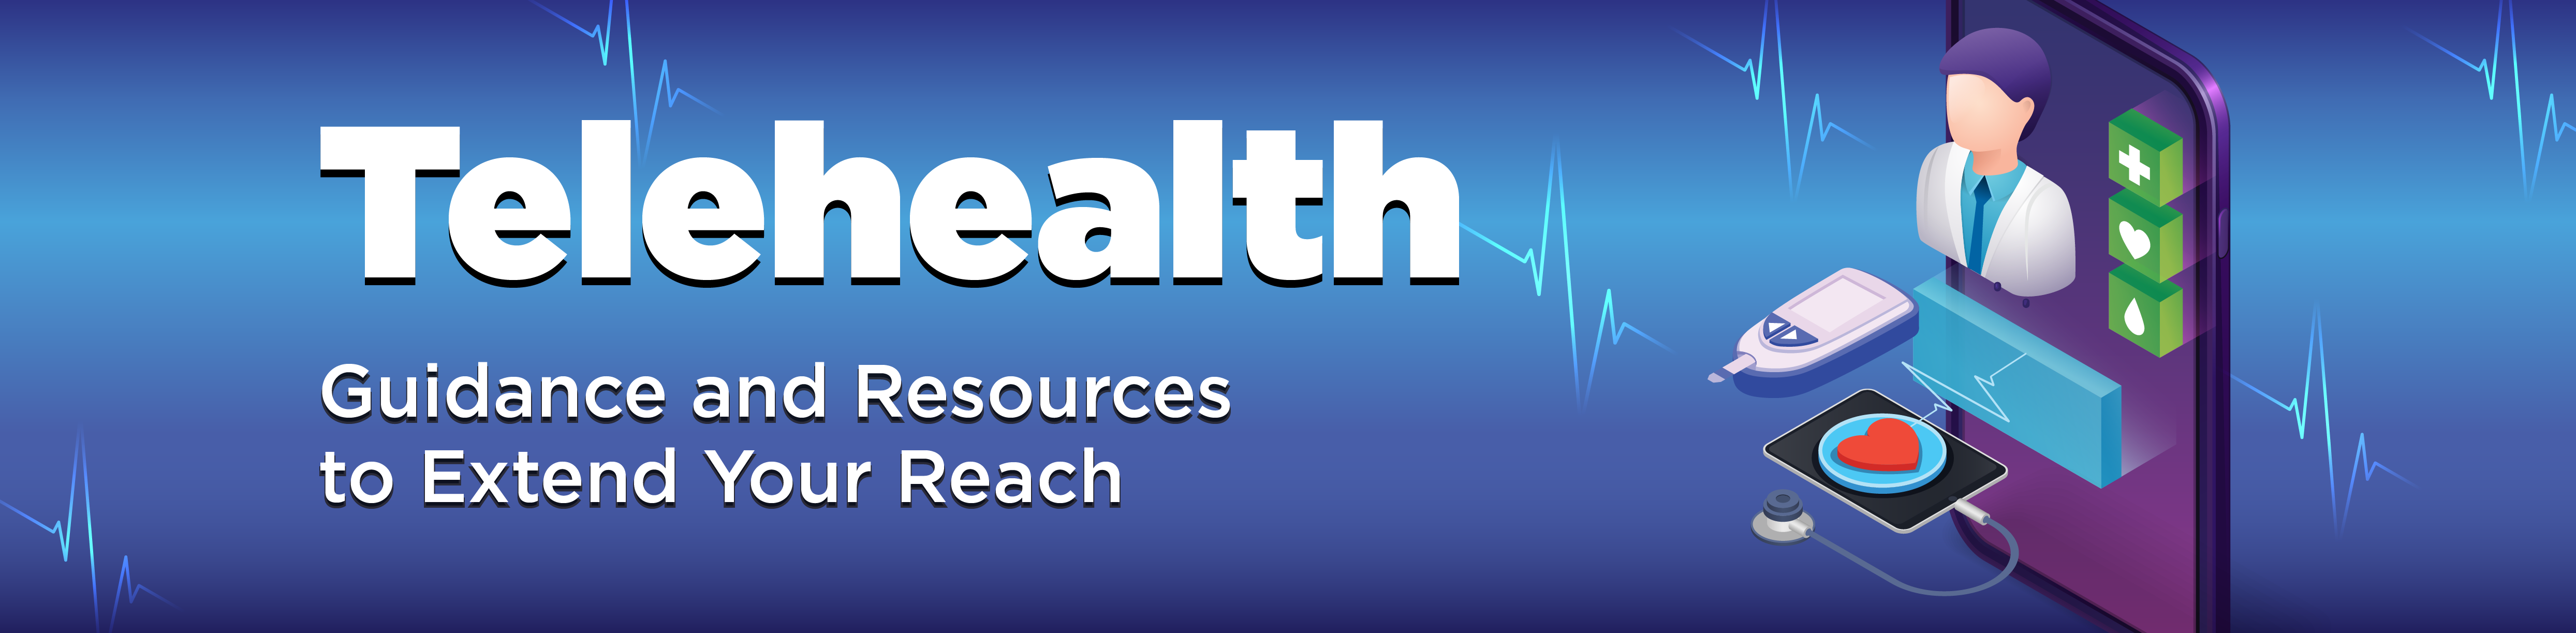 Telehealth: Guidance and Resources to Extend Your Reach